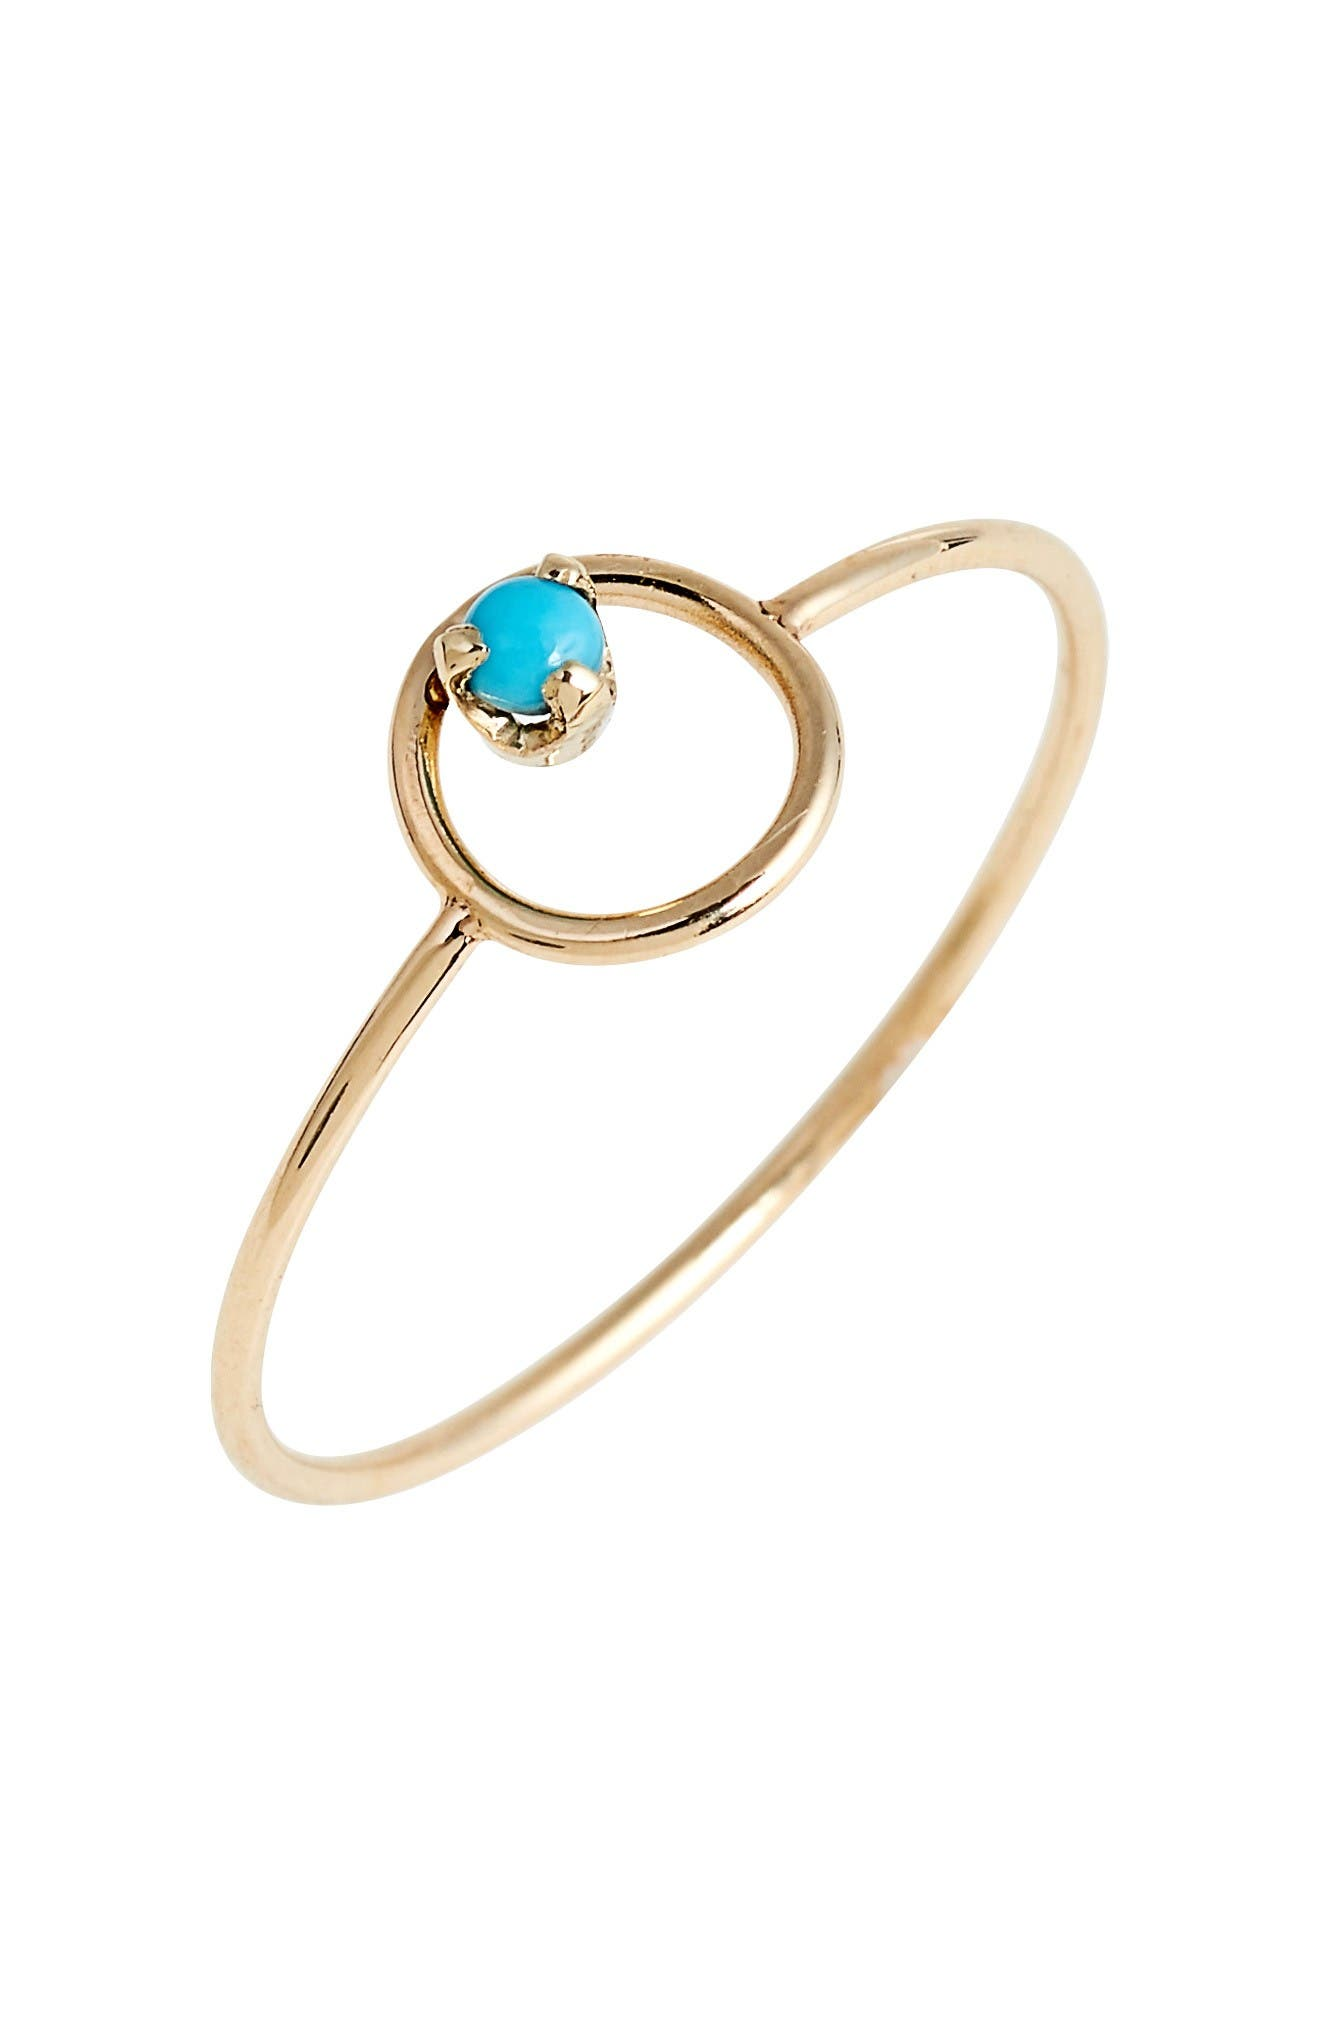 Main Image - Zoë Chicco Turquoise Circle Ring